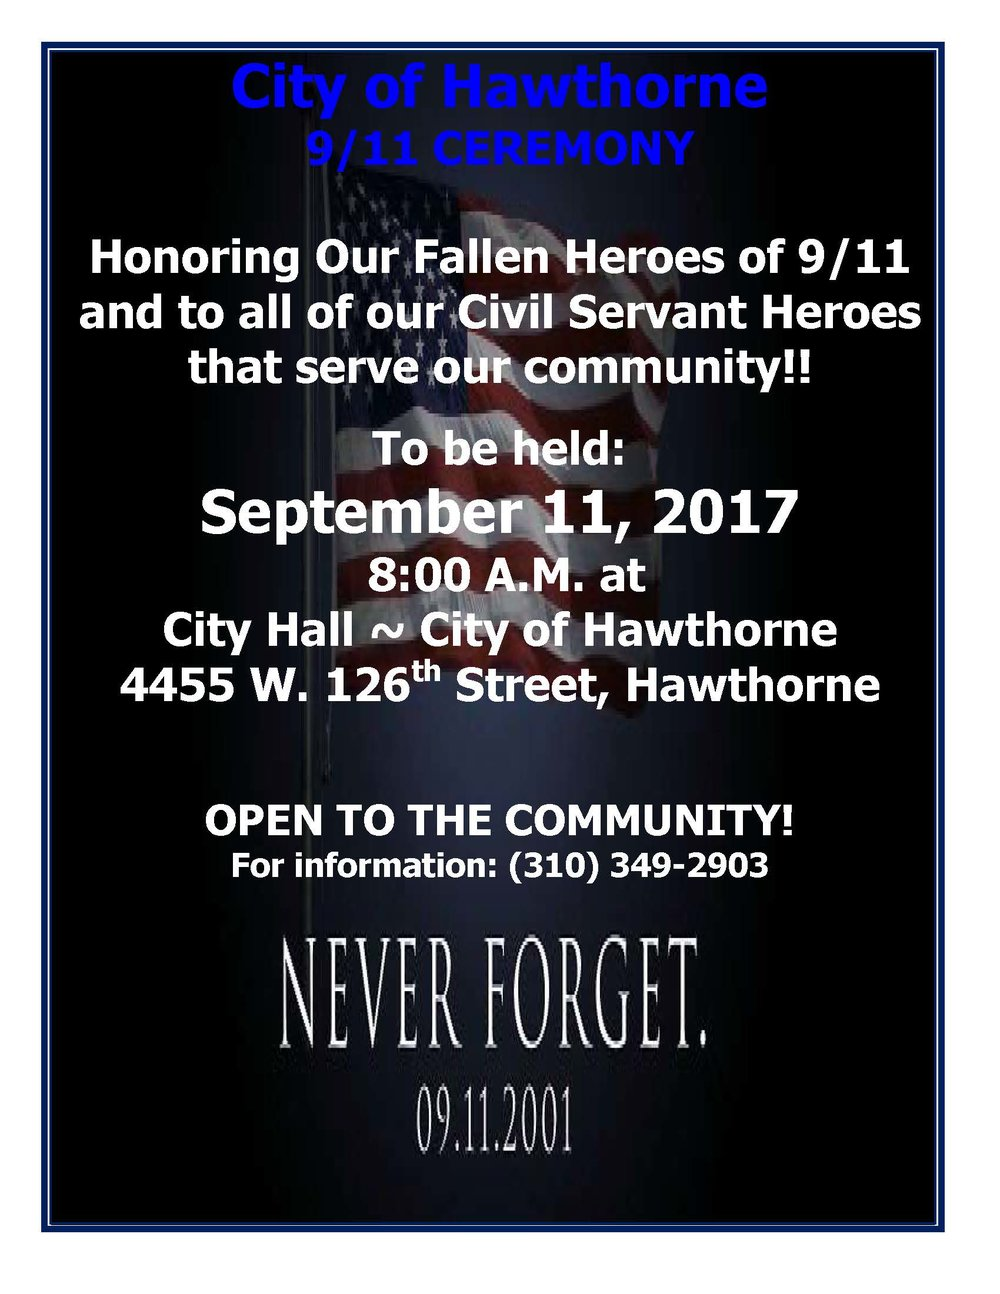 City of Hawthorne 9/11 Ceremony